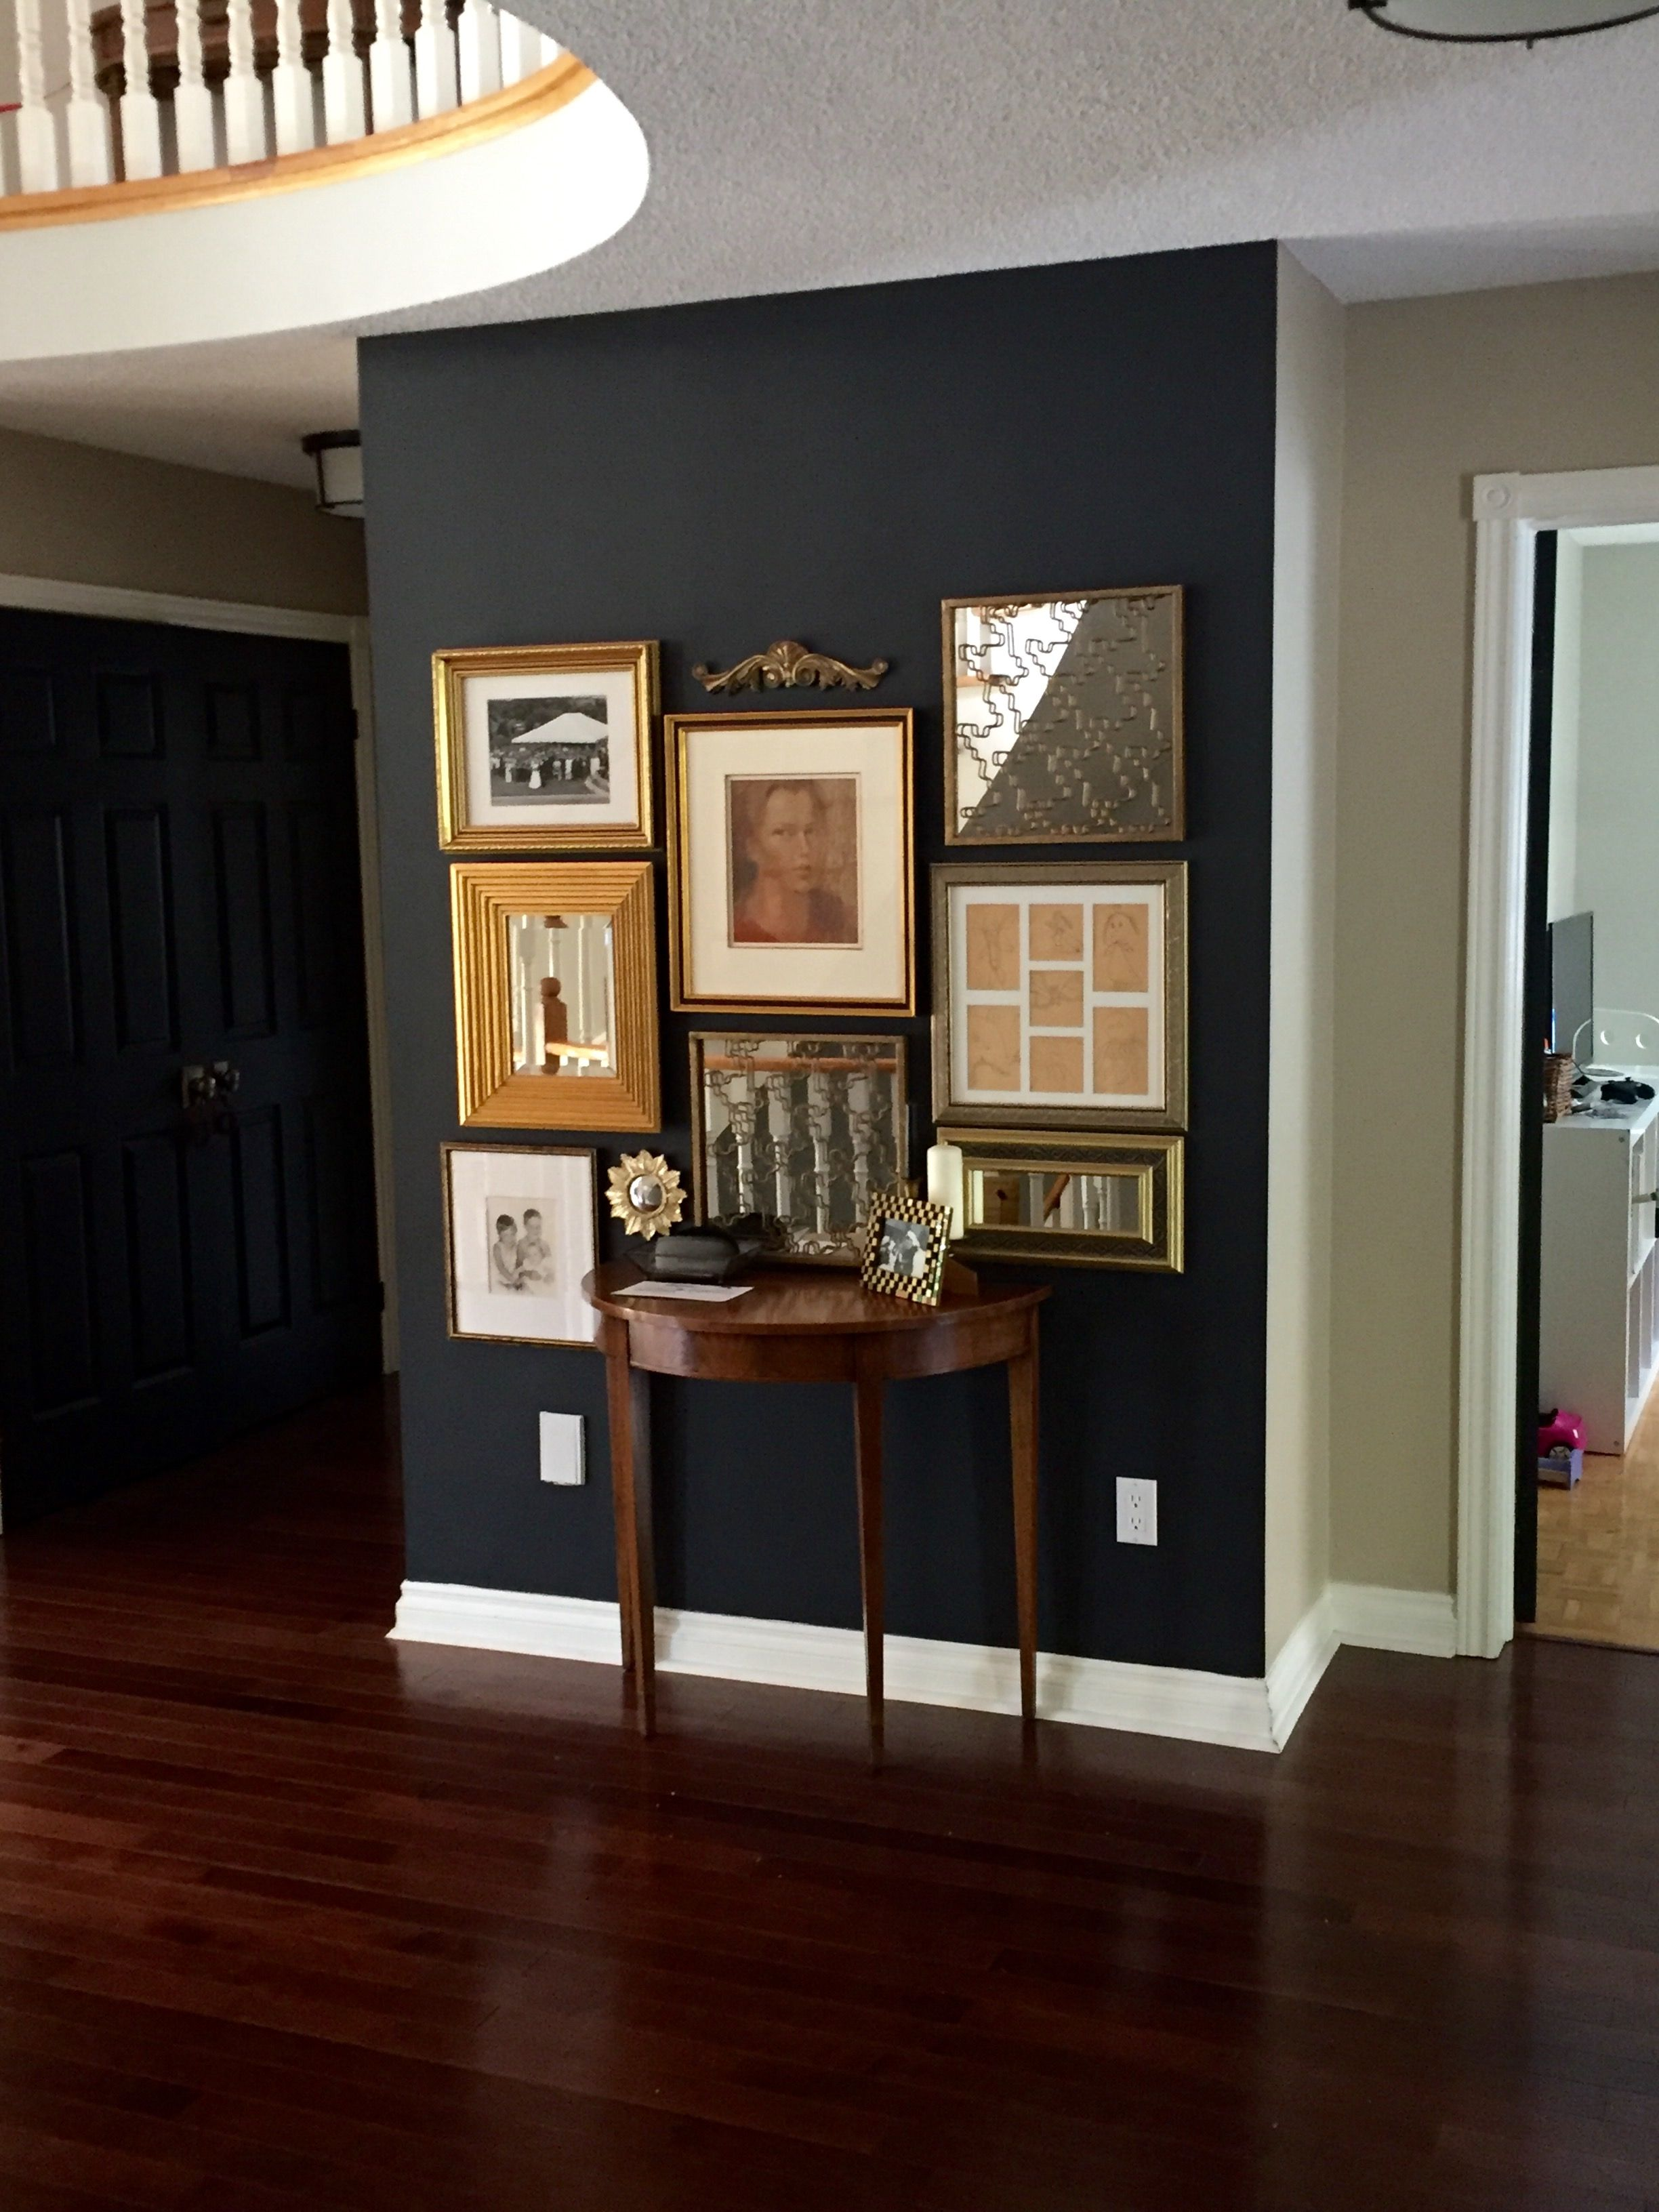 Benjamin Moore Wrought Iron Gallery Wall With Gold Frames Black Accent Wall Living Room Accent Walls In Living Room Black Accent Walls